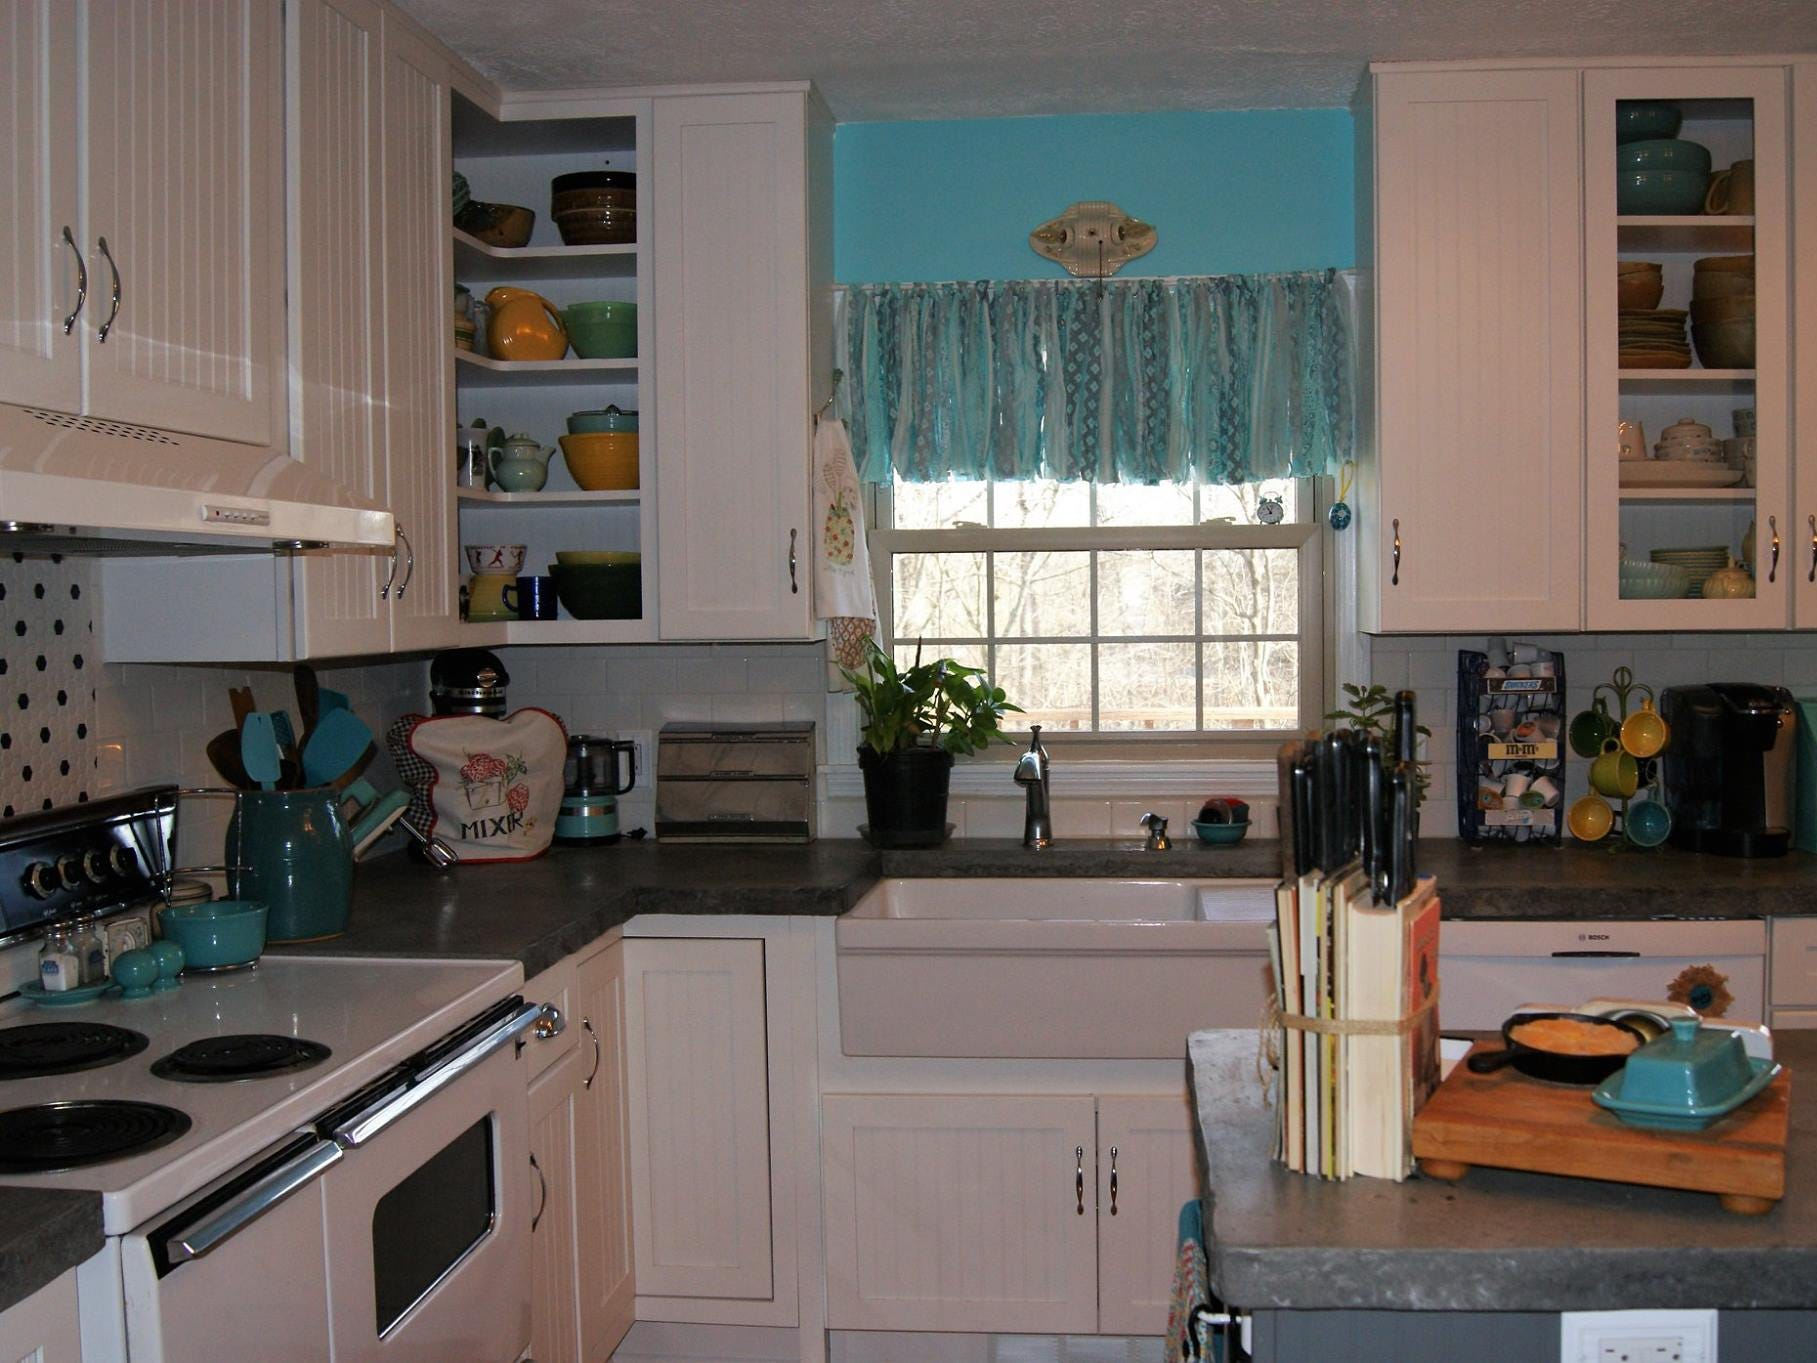 Kathleen Walter loves her newly-renovated retro 1950s kitchen.